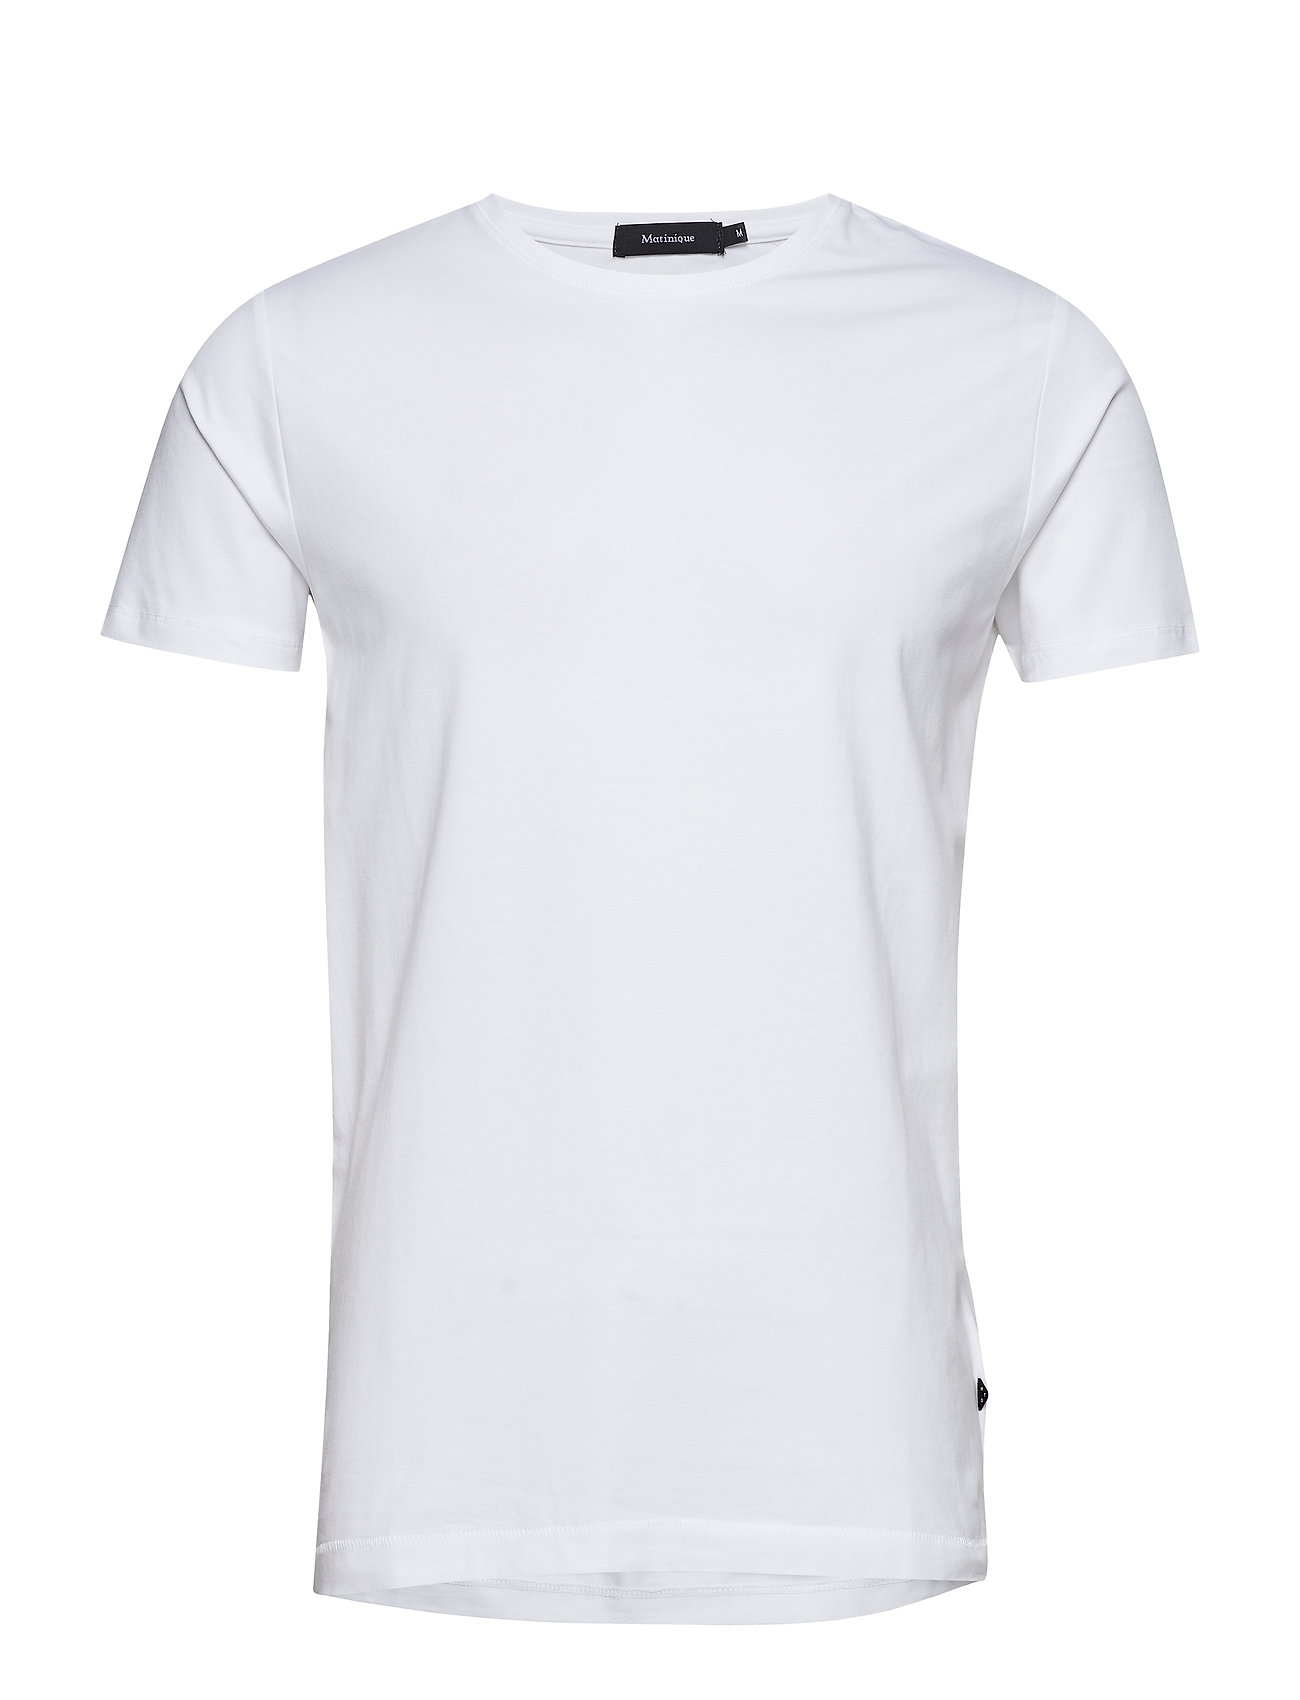 Matinique Jermalink Cotton Stretch - WHITE